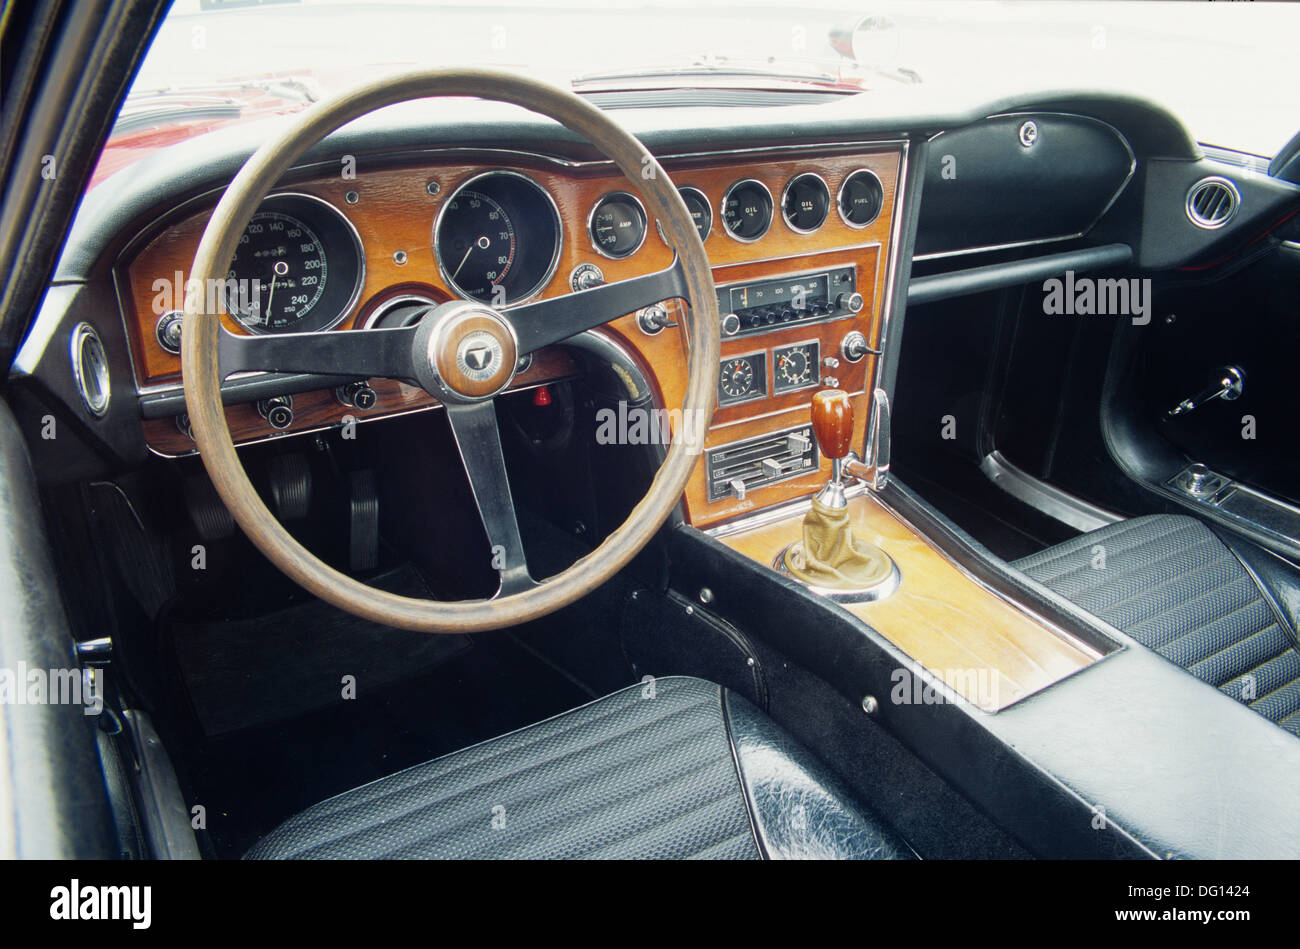 toyota 1960s photos toyota 1960s images alamy. Black Bedroom Furniture Sets. Home Design Ideas